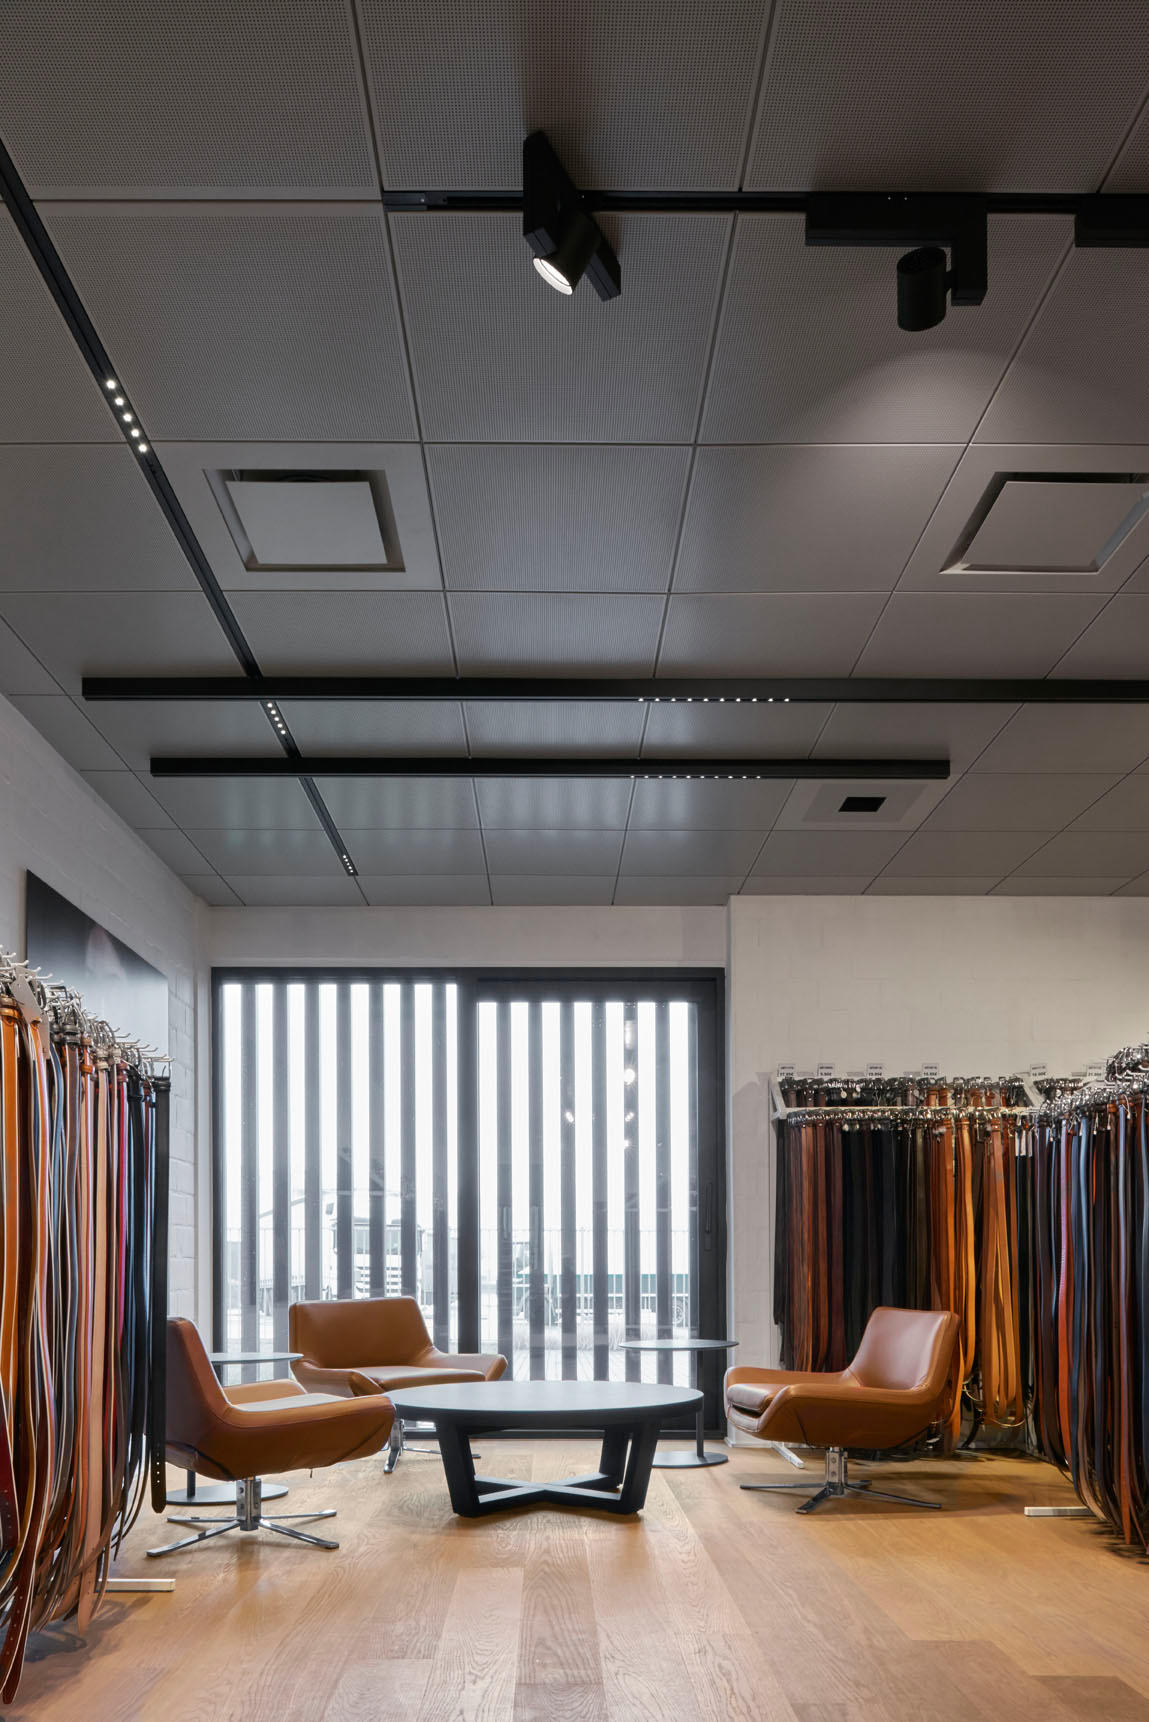 In Tile Ventilation Suspended Ceilings From Kreon Architonic